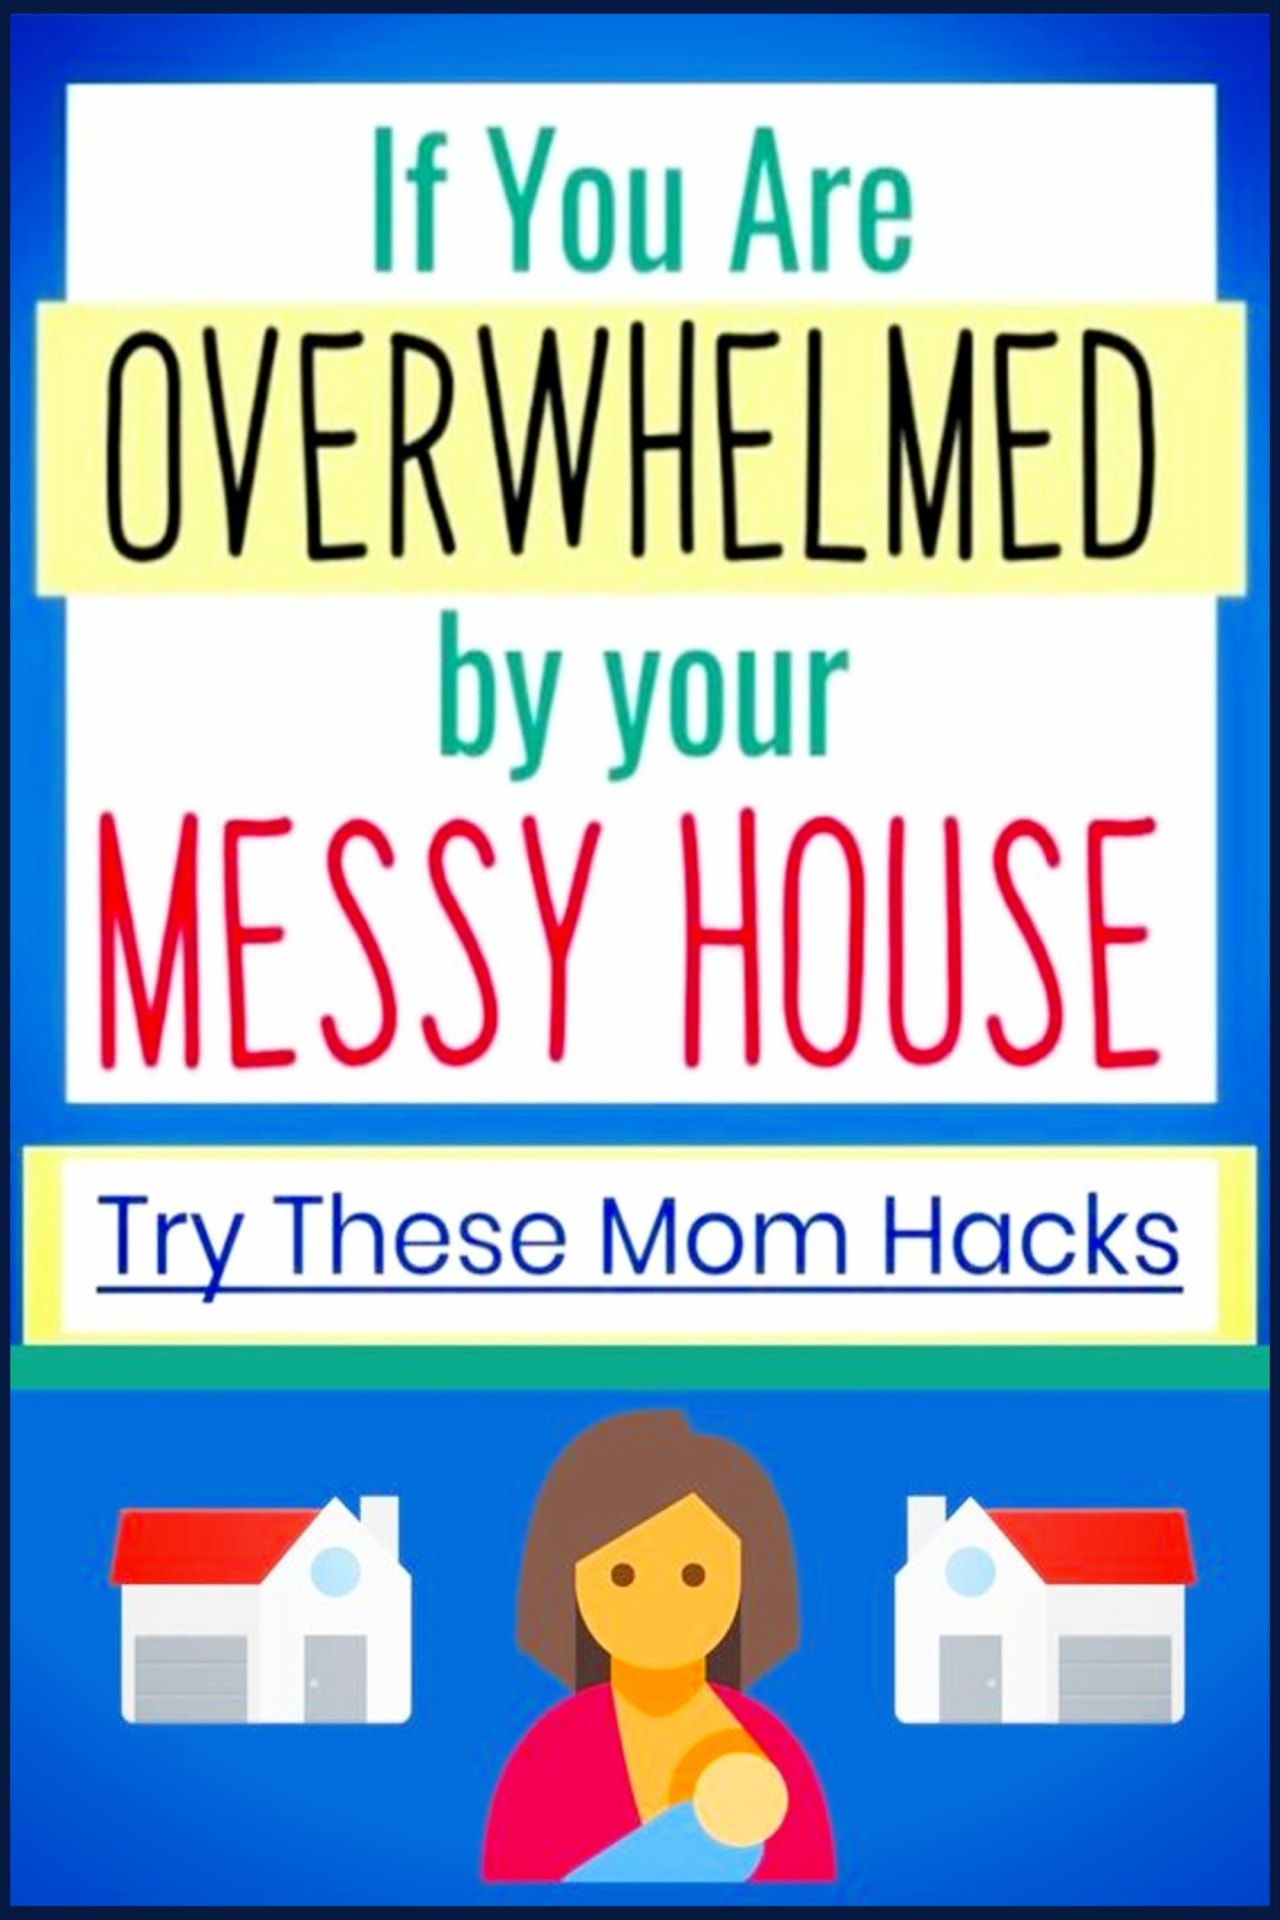 Easy decluttering tips and Organizing Ideas For The Home - Decluttering Ideas if you're feeling overwhelmed - where to start decluttering and organizing your messy house - decluttering step by step to declutter and organize without feeling overwhelmed